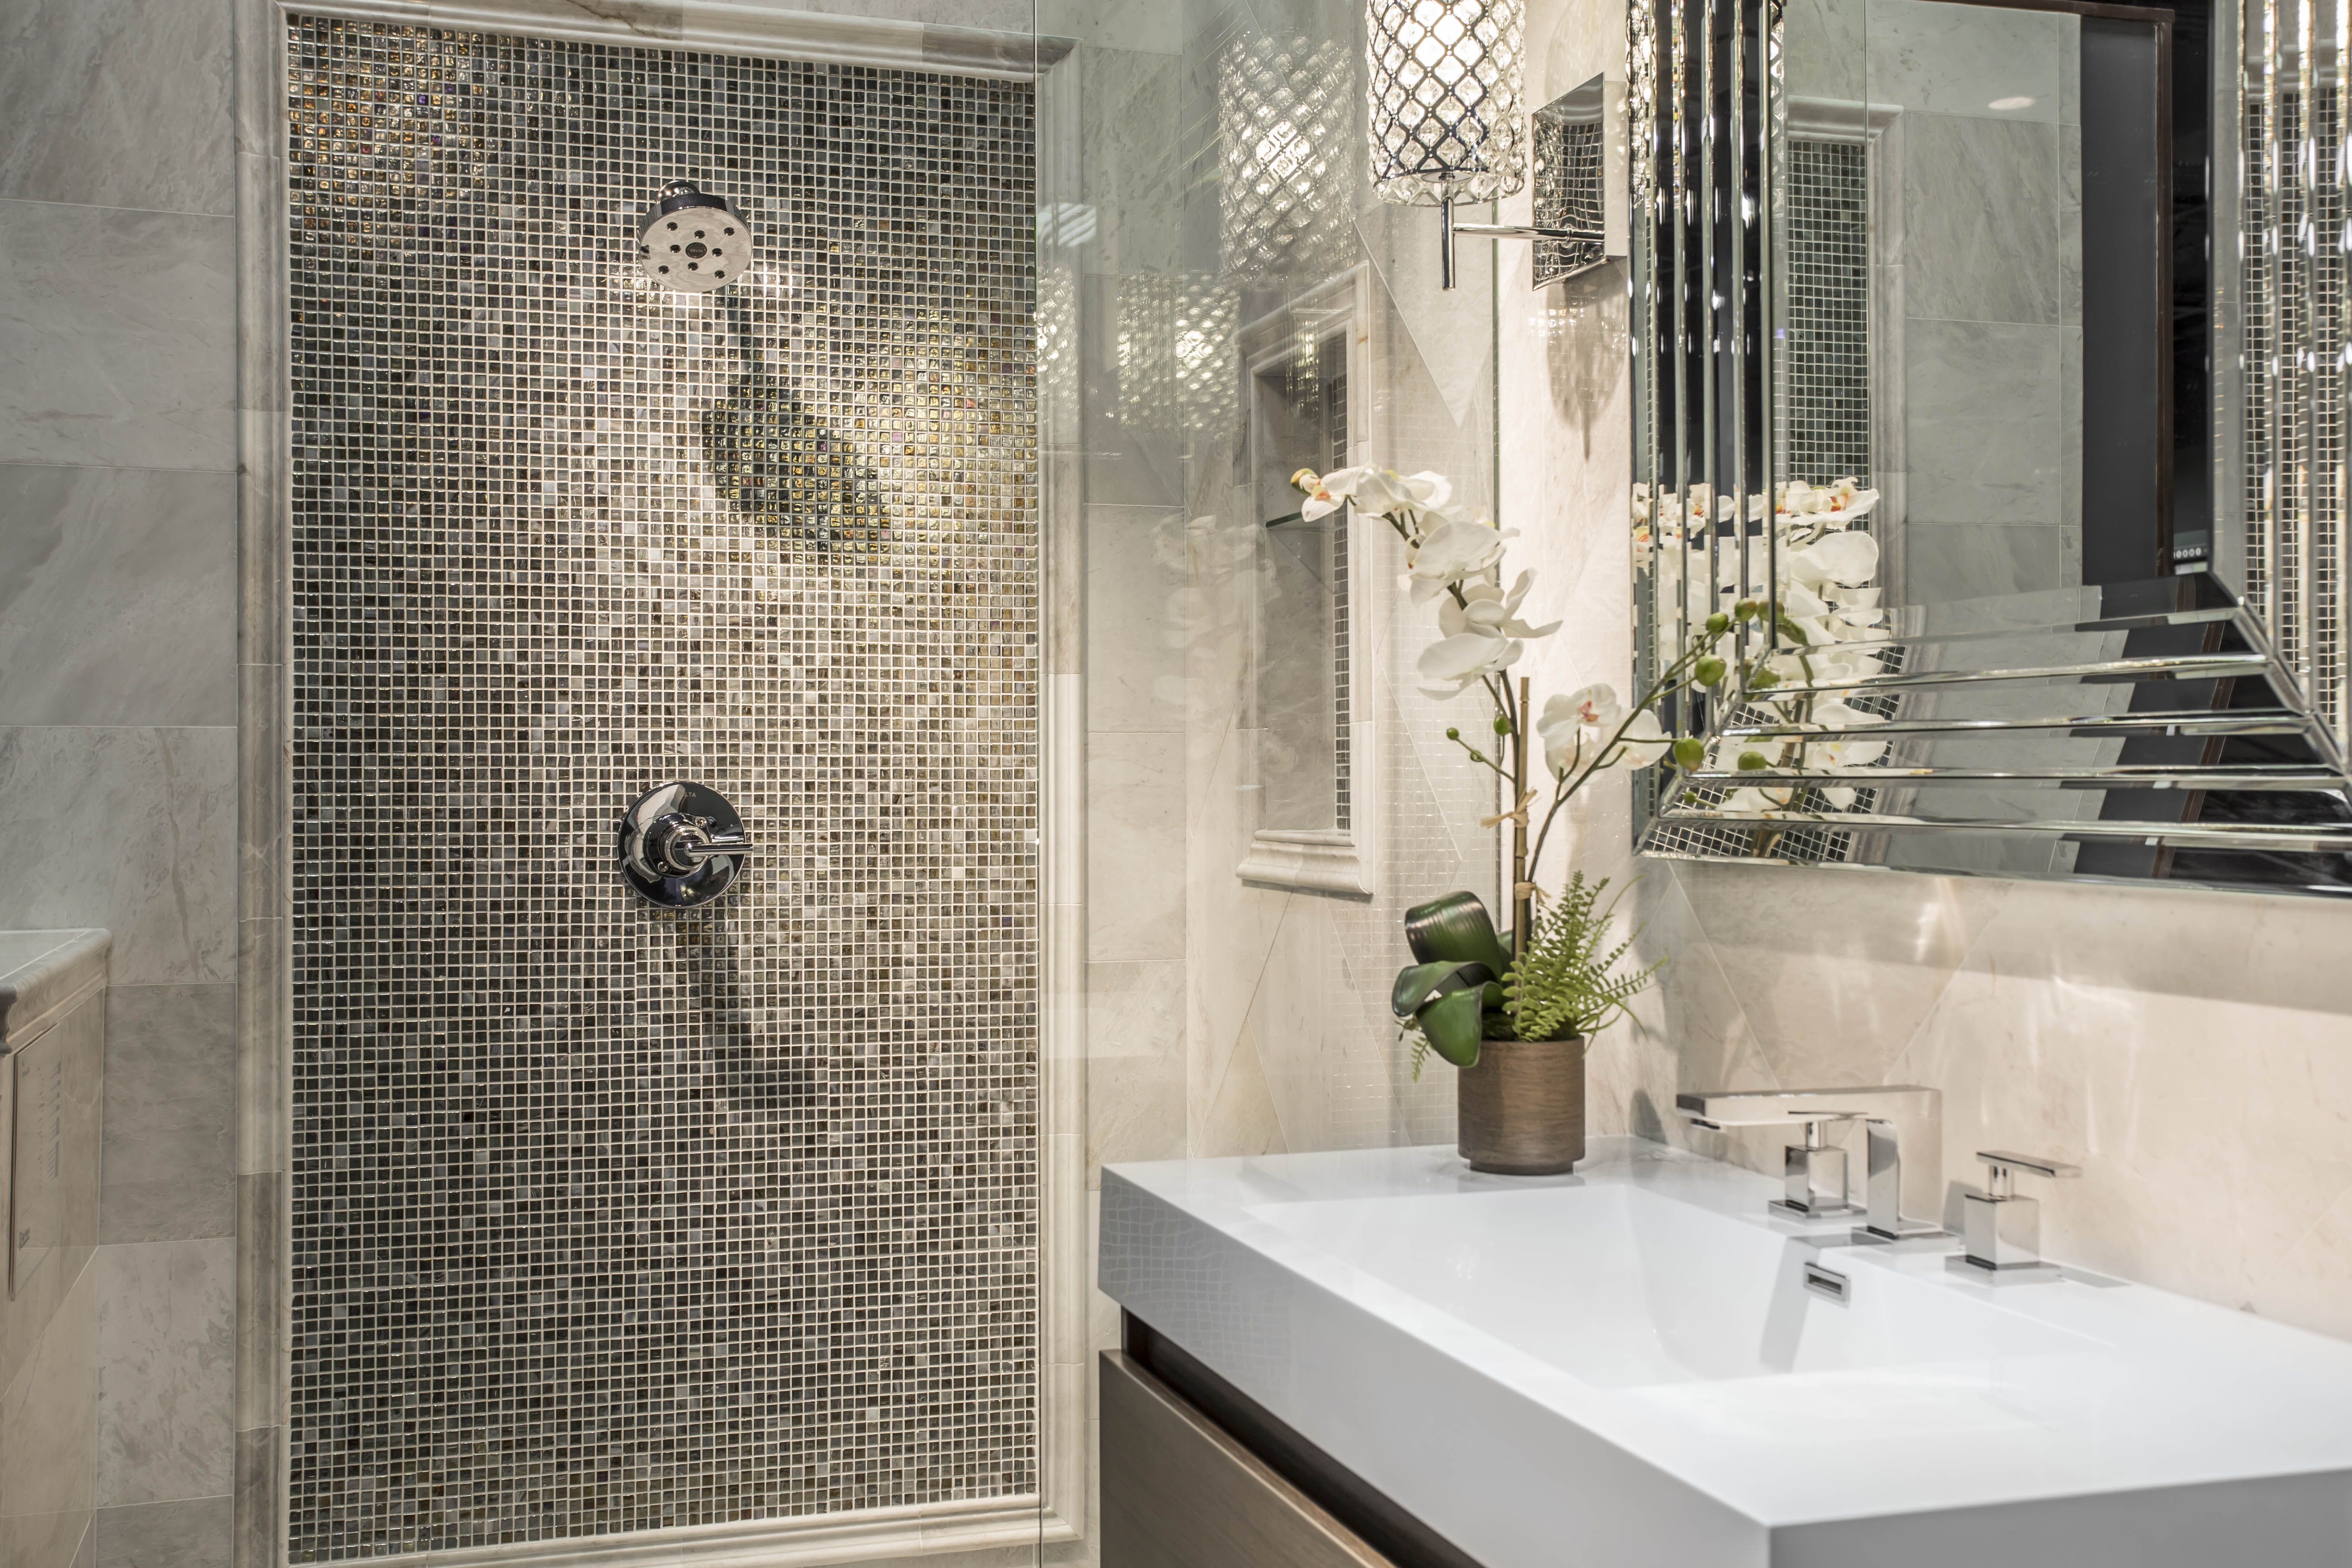 Marble Finishing Pieces Frame The Glass Mosaic Shower